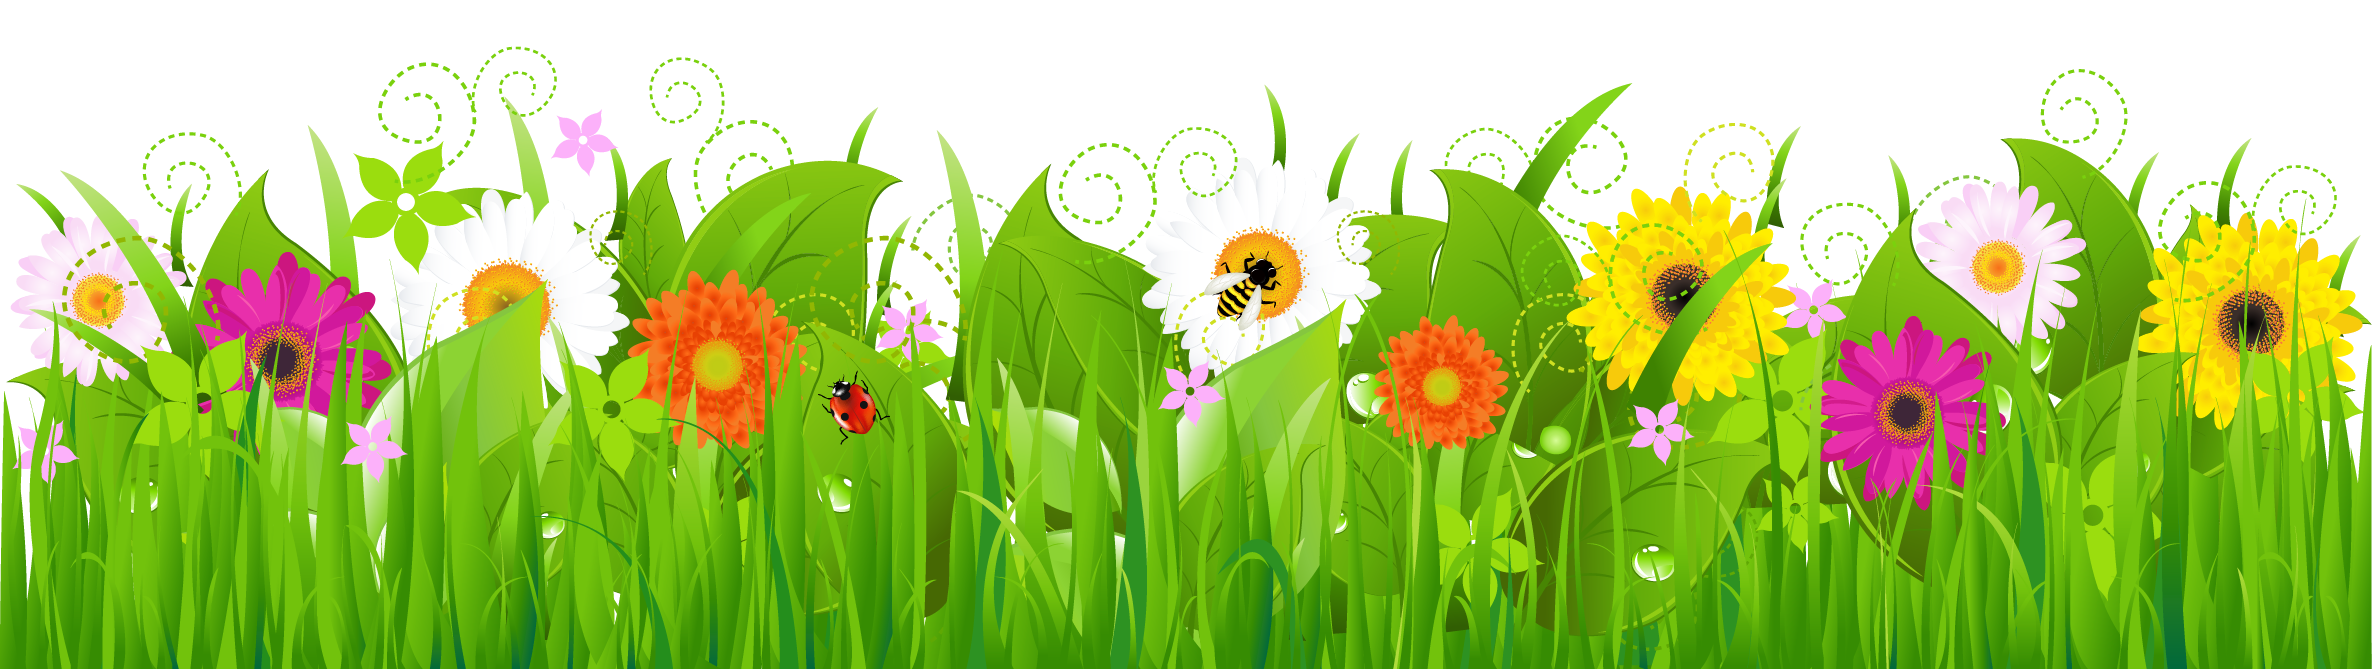 Clip art cliparts for. Clipart grass ground